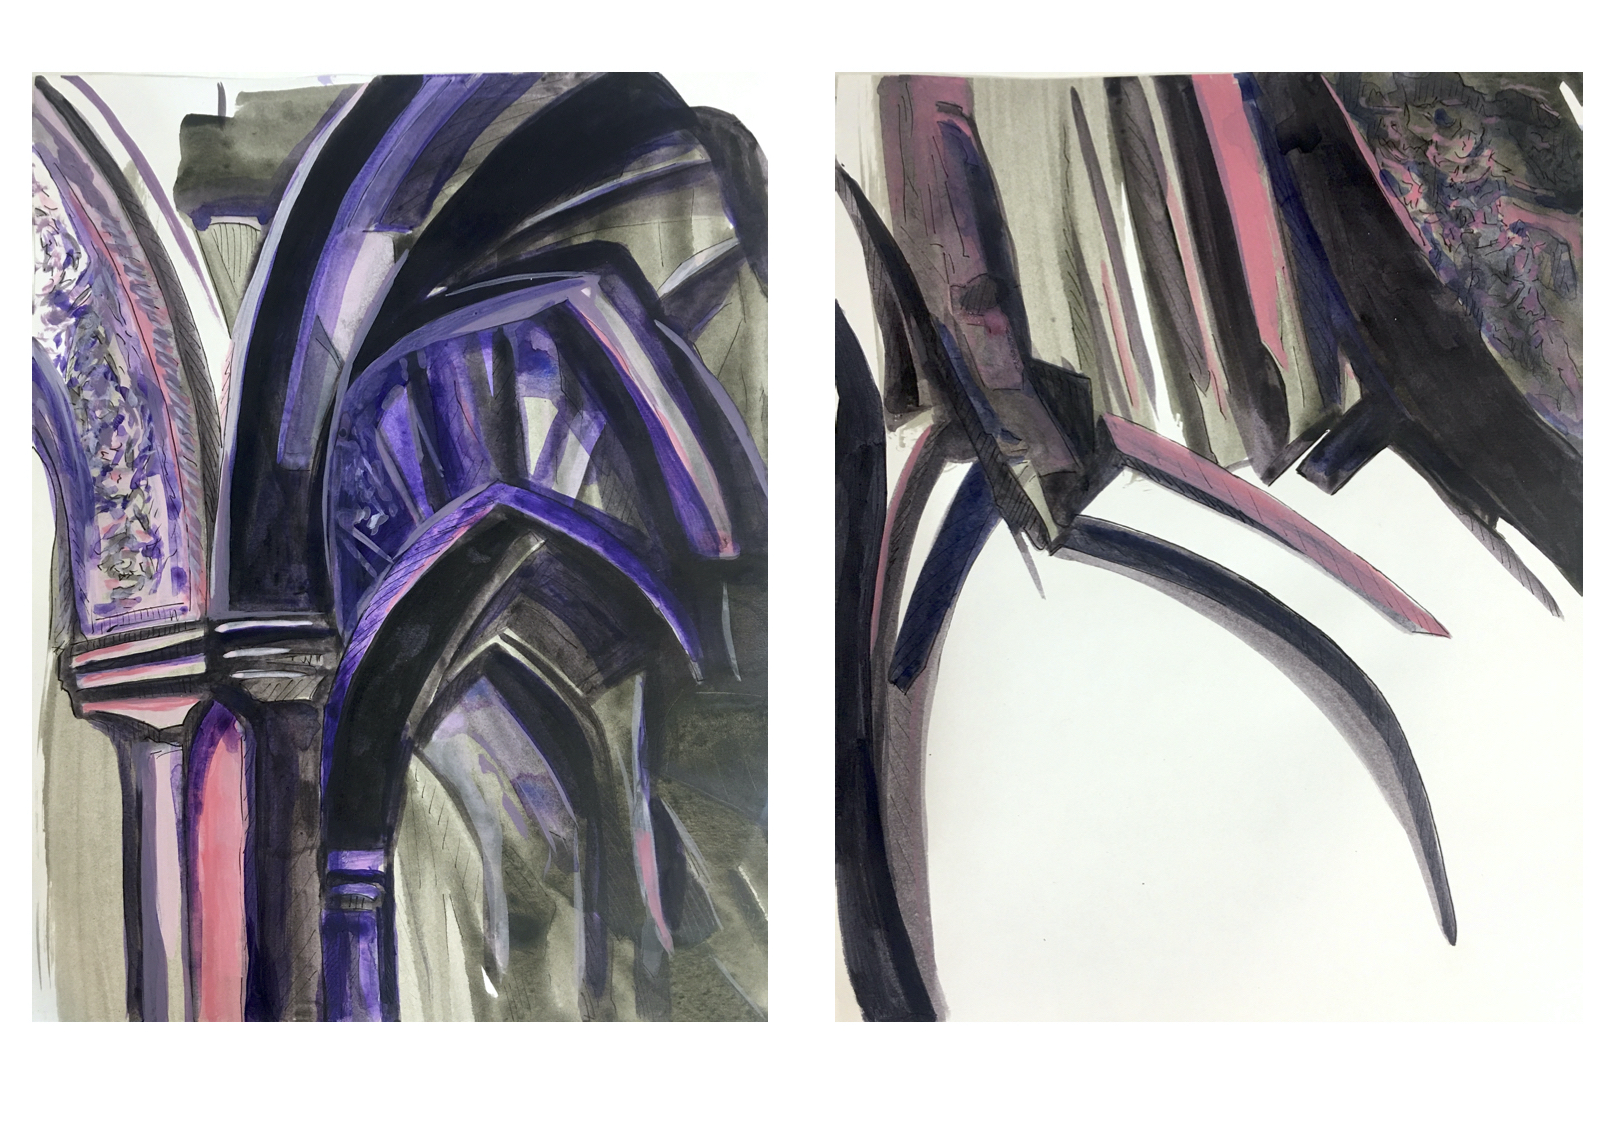 Interiors of 17th Century, acrylic on paper, 14x11 inches each, 2020